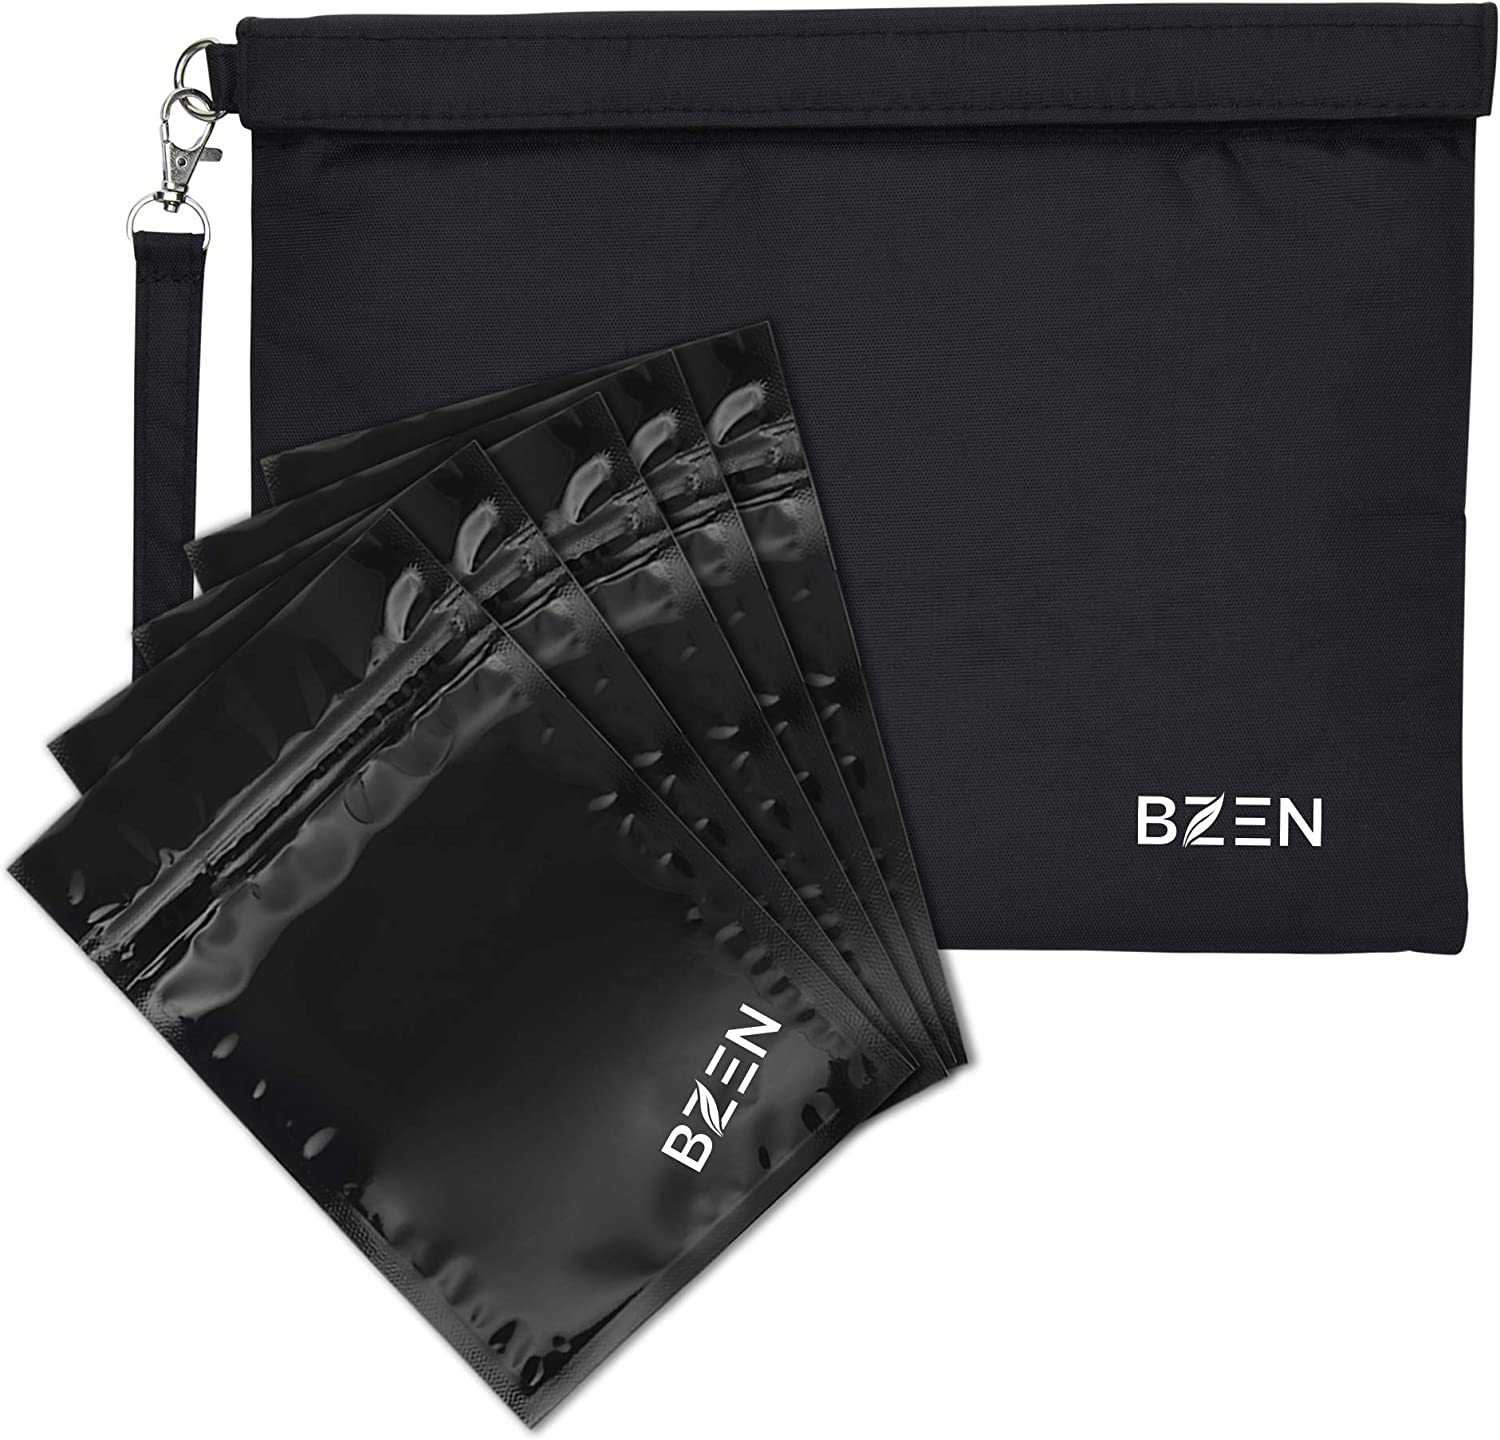 Smell proof bag bolsa a prueba de olores by Bzen pouch container 12x9 inches + 5 Plastic RESEALABLE bags for Herbs, Spices, Tea, Cheese Activated Carbon Lining, Heavy Duty, Detachable Handle